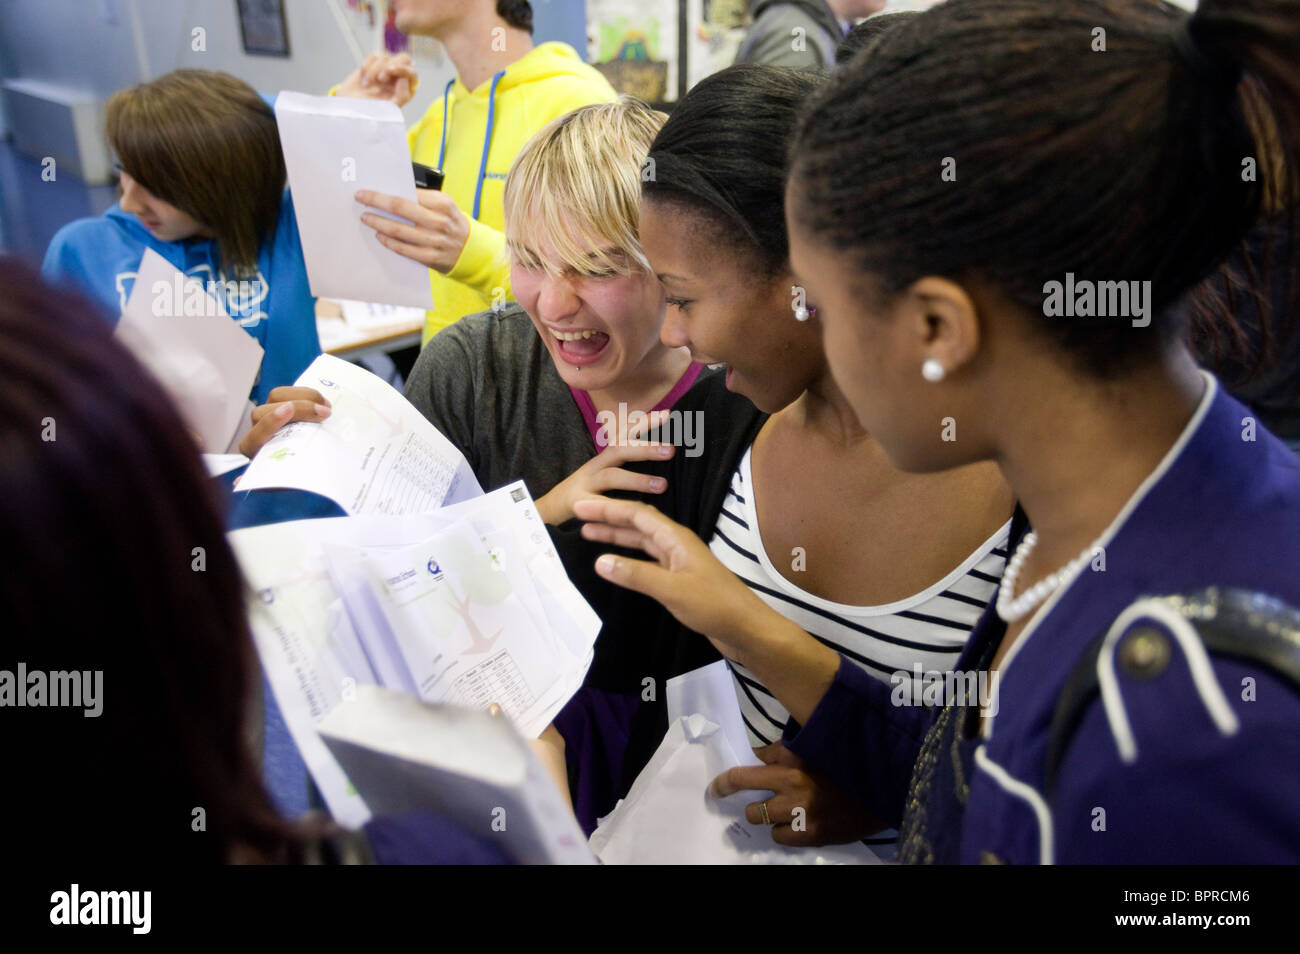 Pupils at Perry Beeches school in Birmingham celebrate their GCSE exam results. - Stock Image